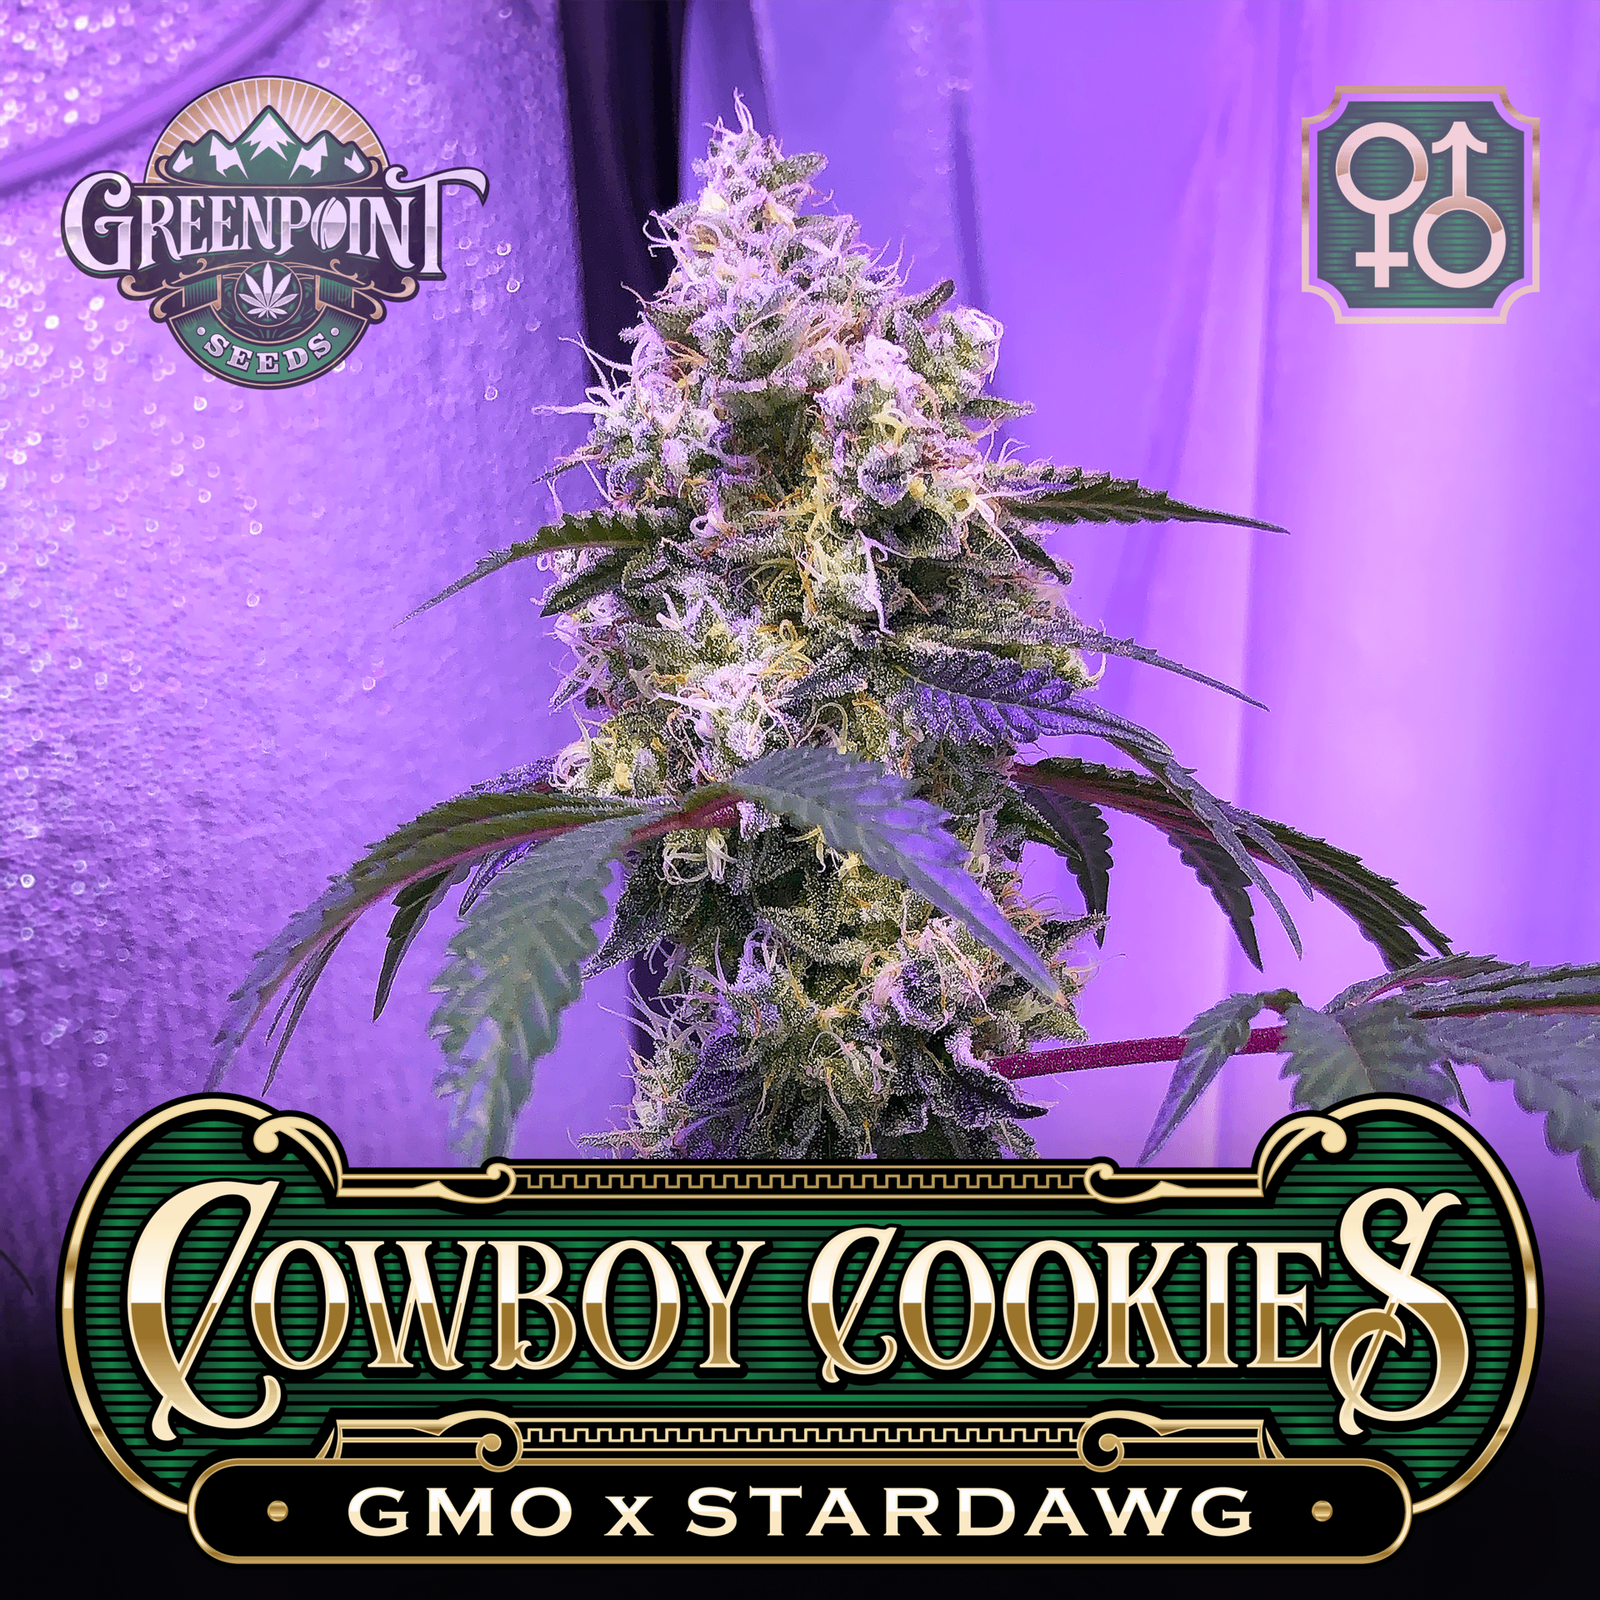 cowboy-cookies-gmo-stardawg-greenpoint-seeds_1a_1920px-c.png